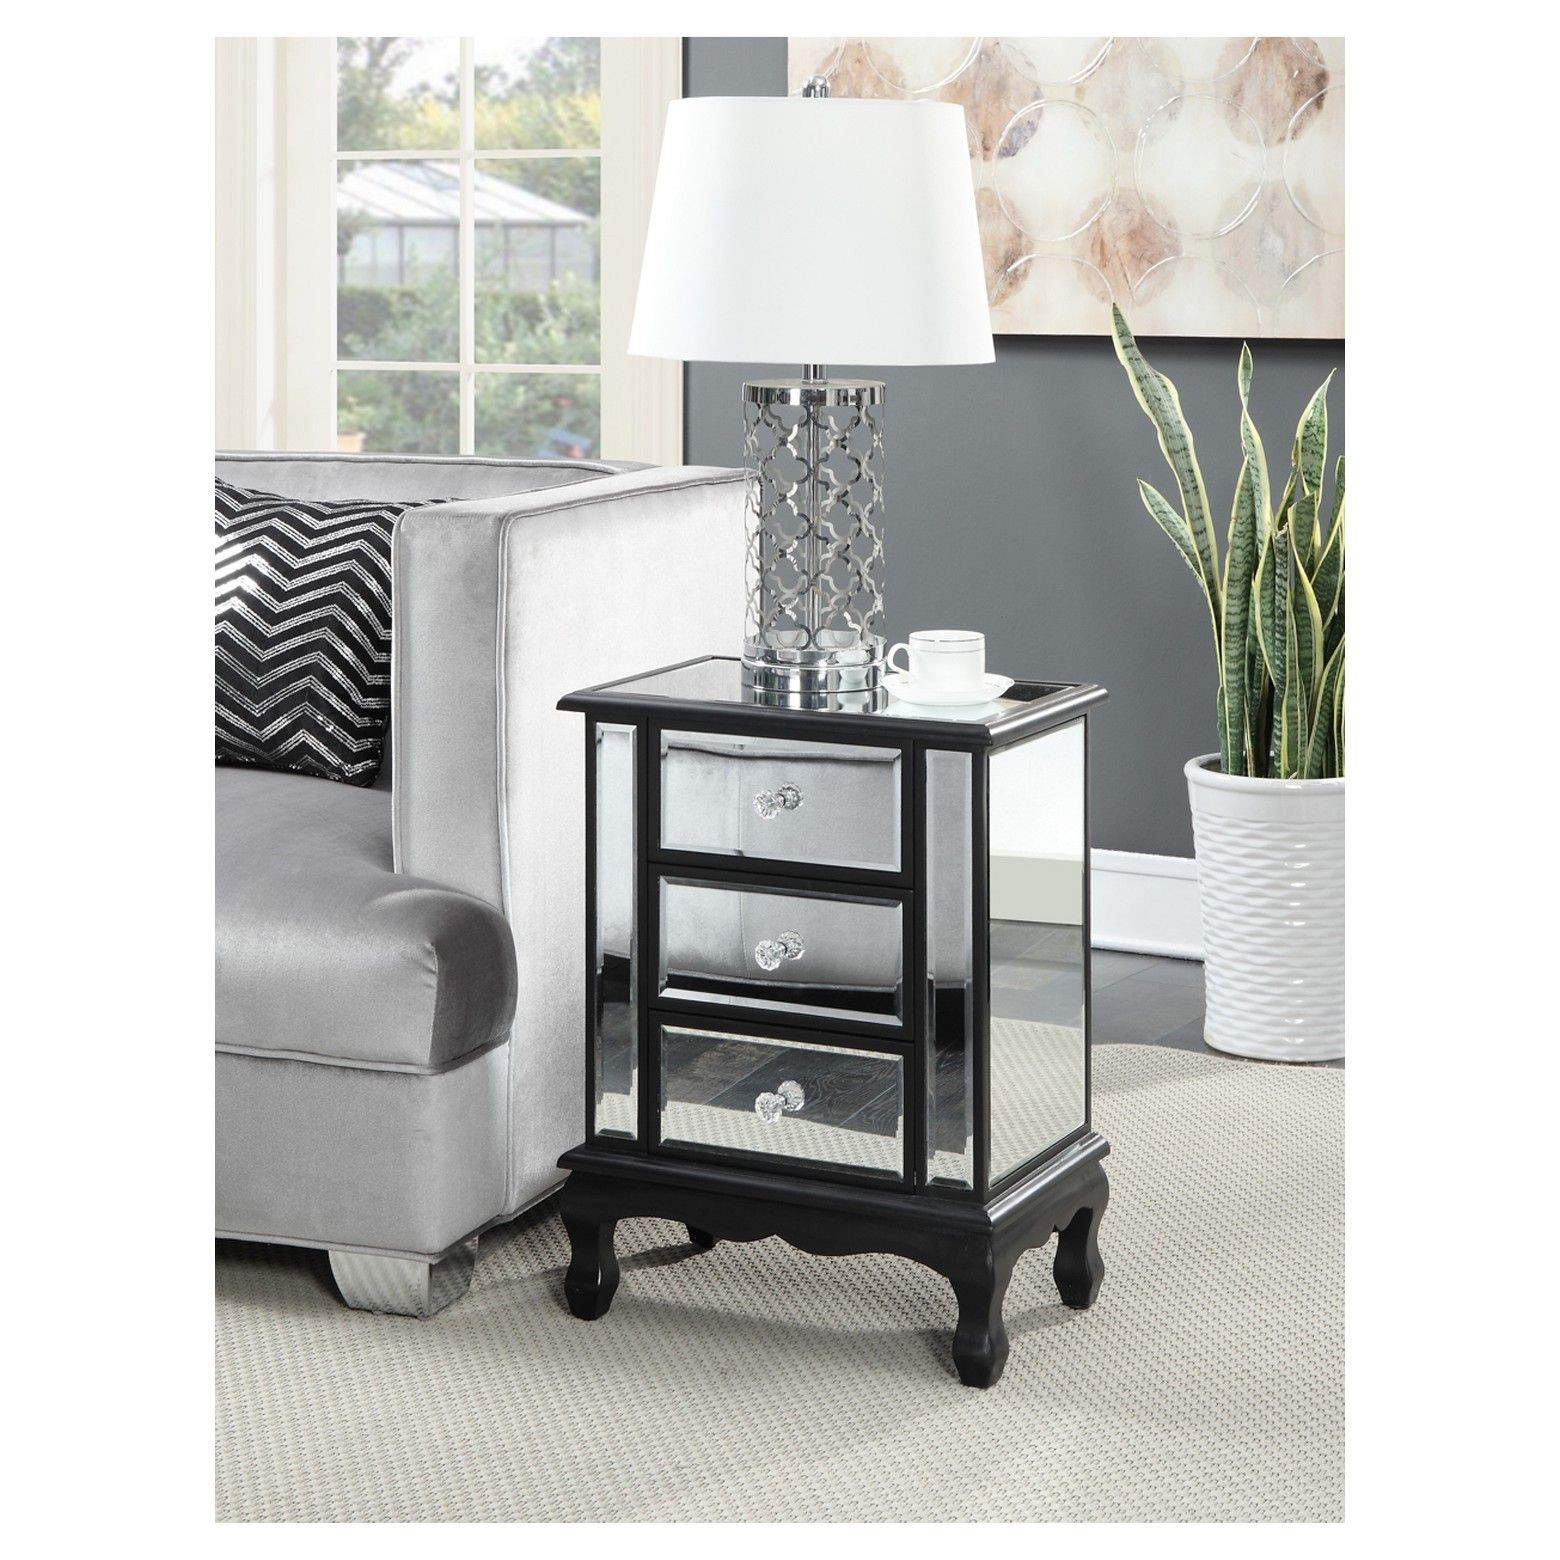 home design mirrored nightstand target best threshold awesome convenience concepts gold coast vineyard drawer end table accent with full size storage boxes metal lamp granite